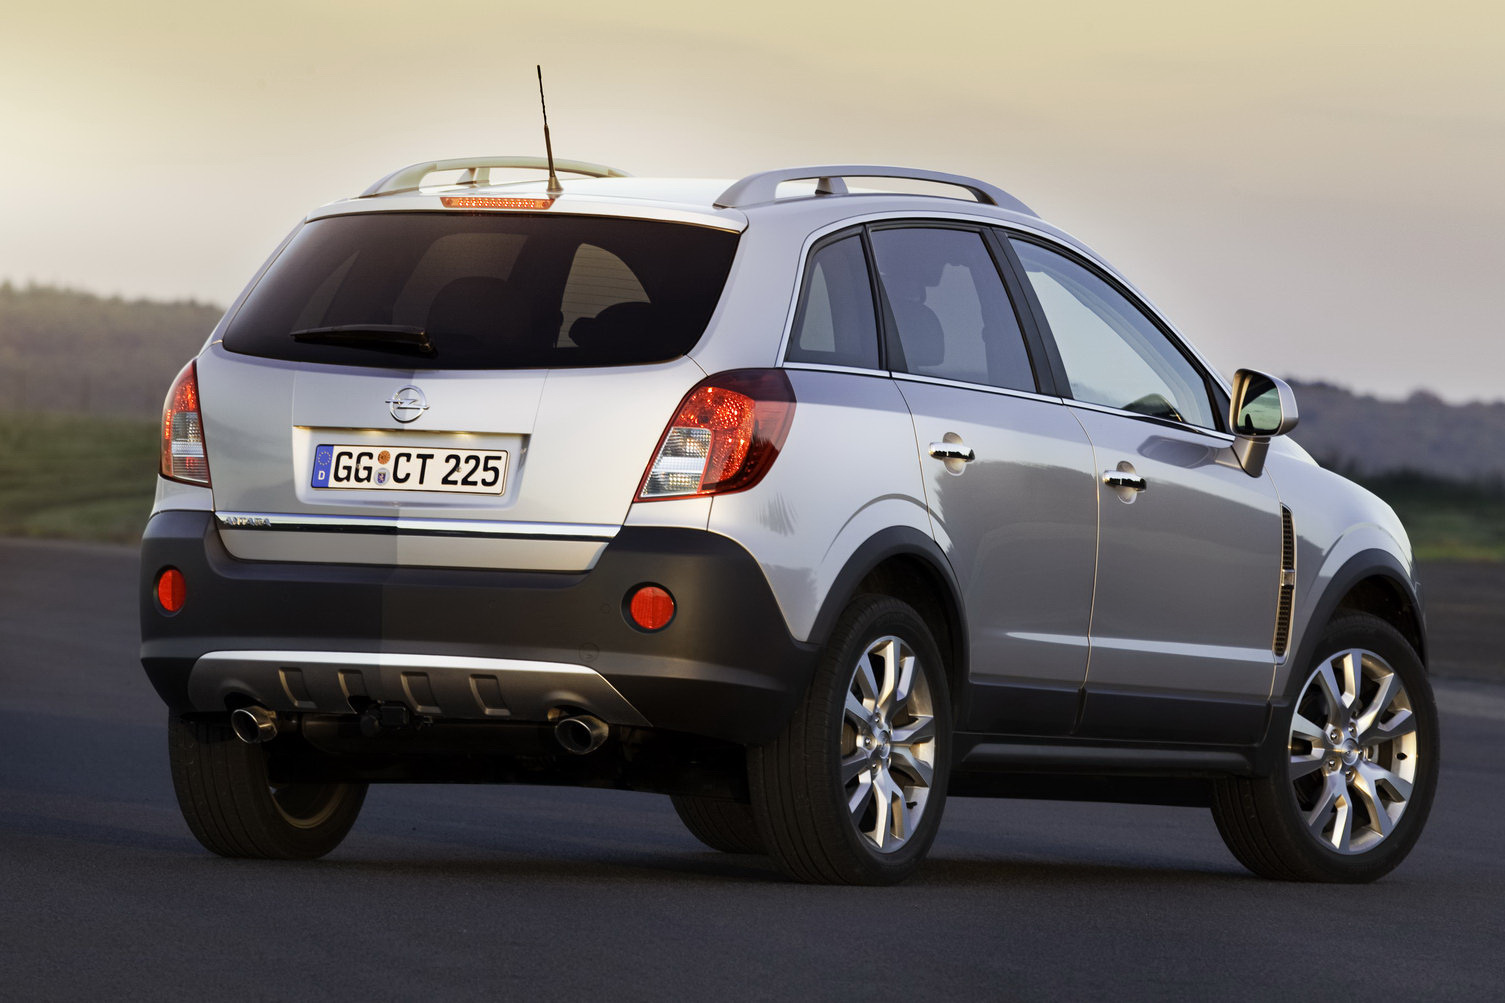 2011 Opel Vauxhall Antara 1 2011 Opel Antara   Photos, Features, Price